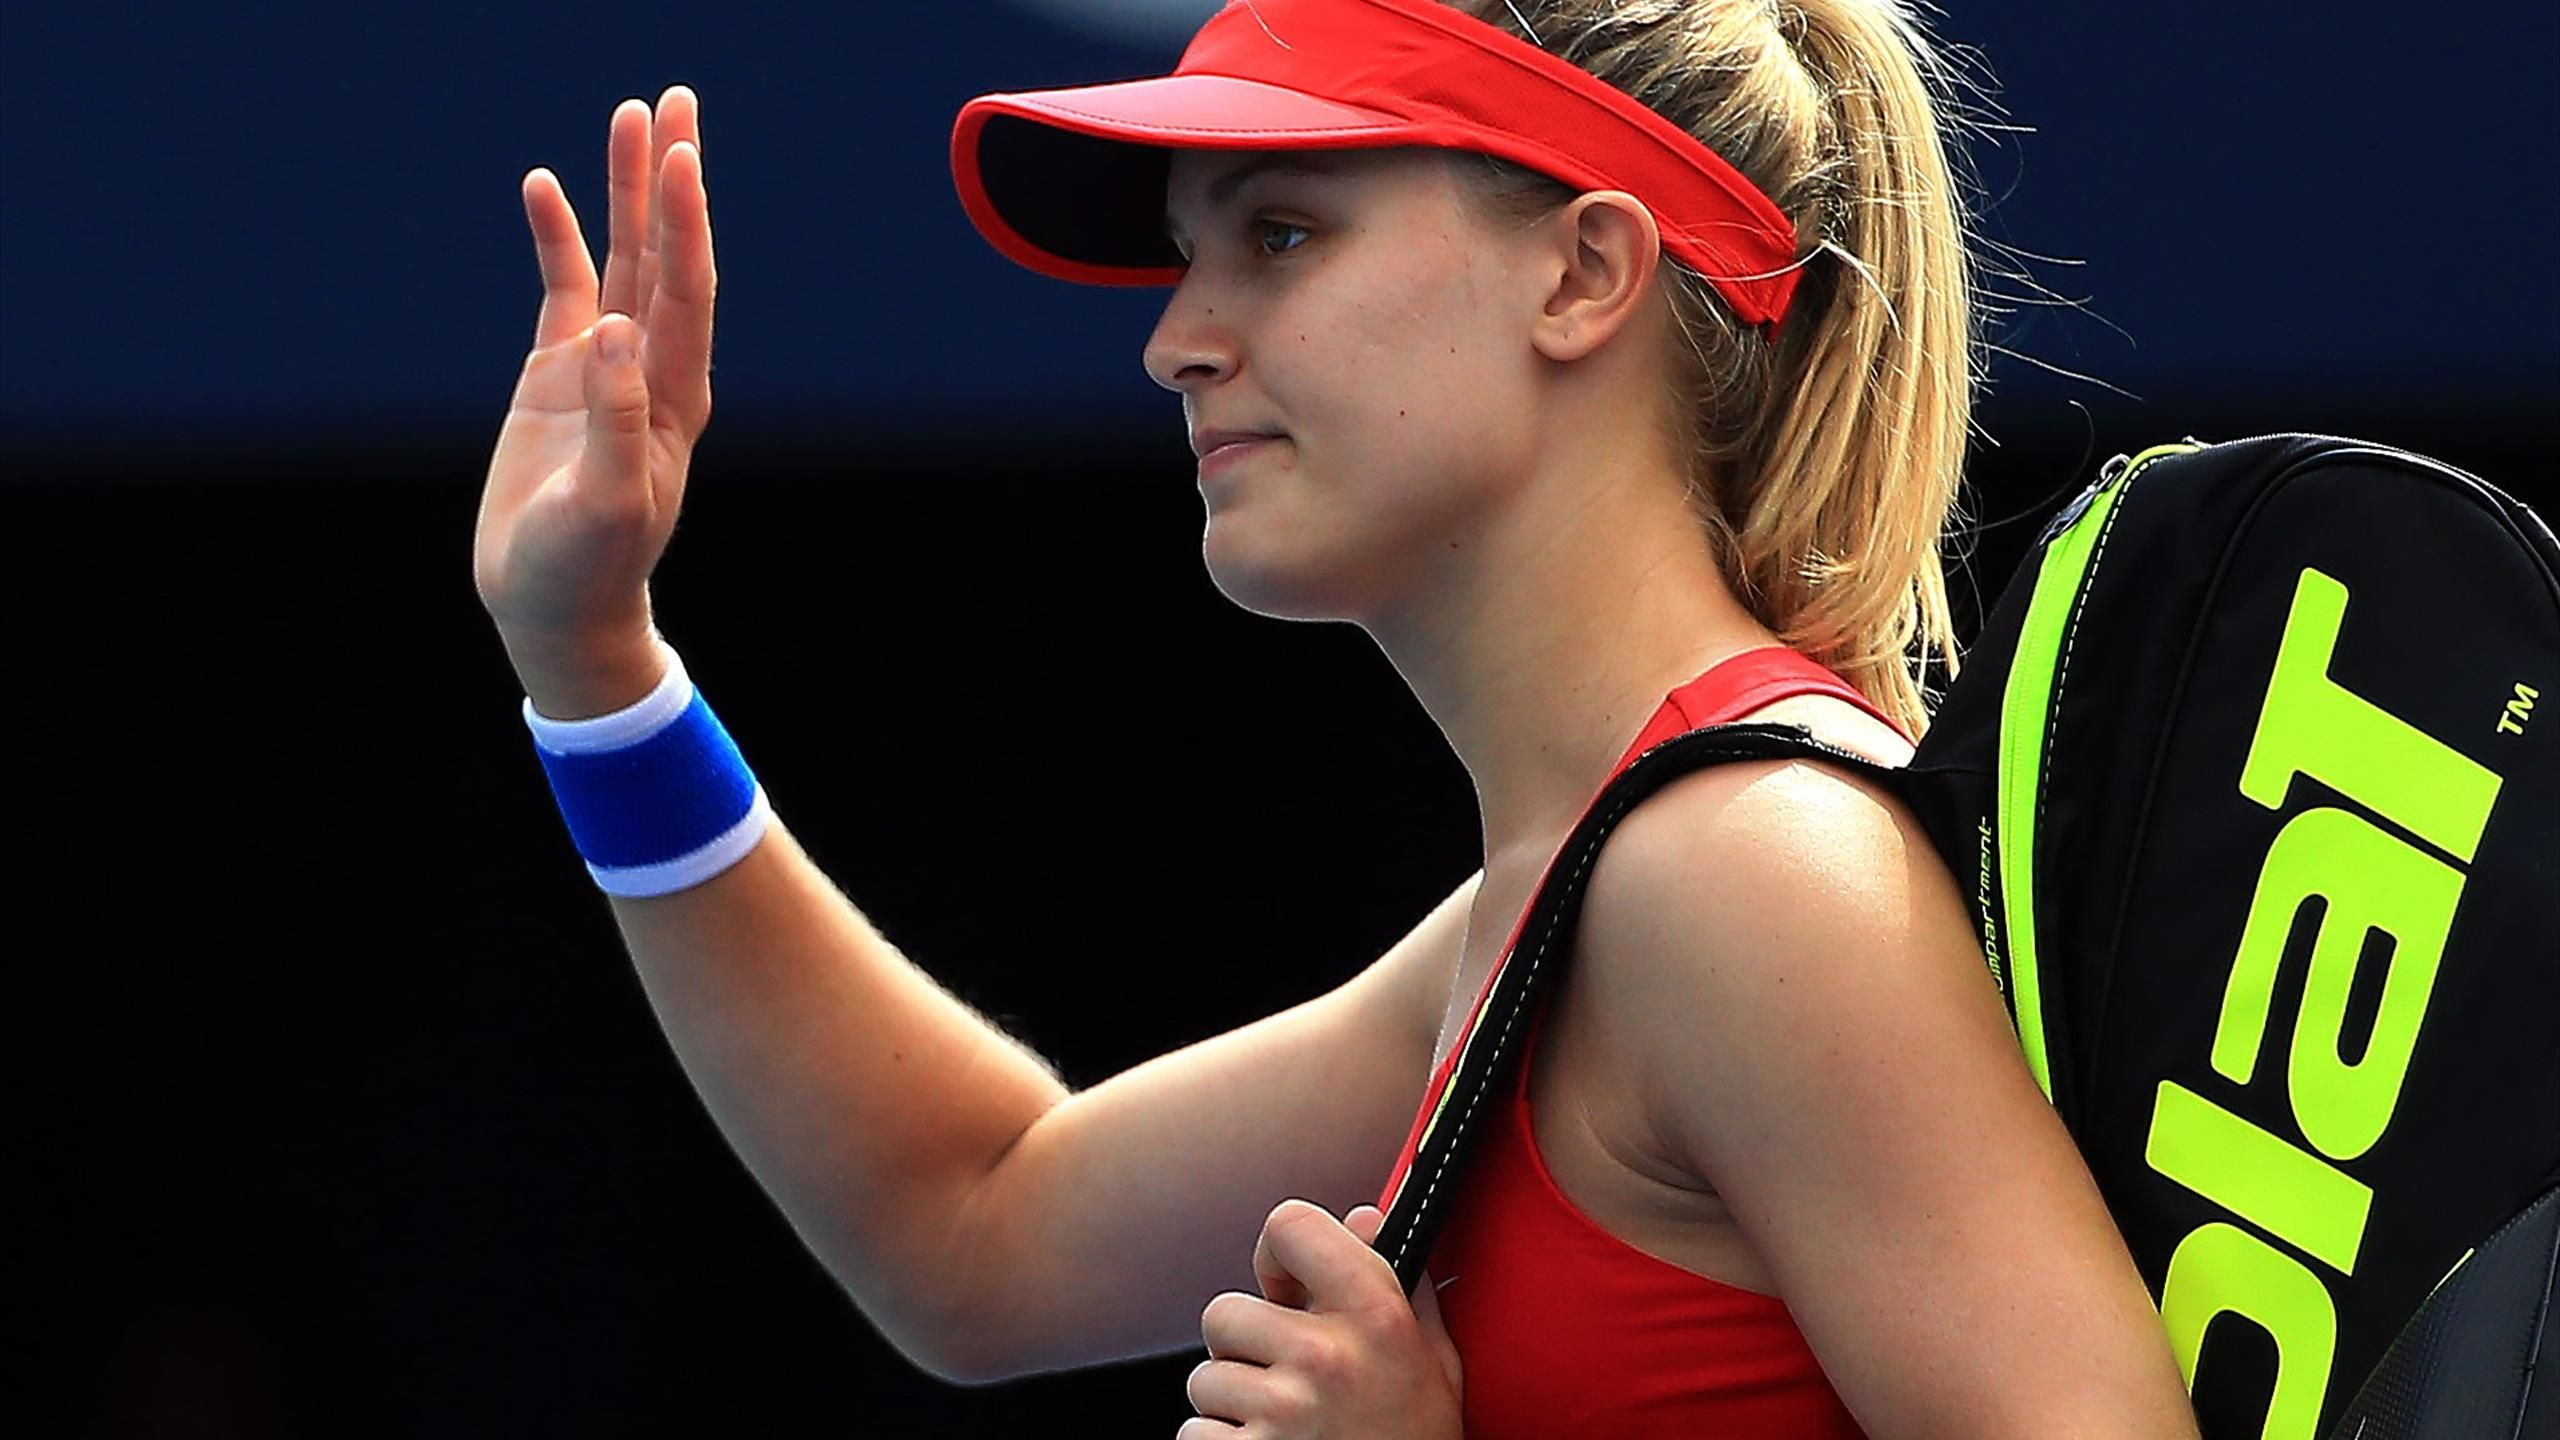 Desktop Eugenie Bouchard Beautiful Showing Hands To Audience Still Mobile Background Free Hd Pictures